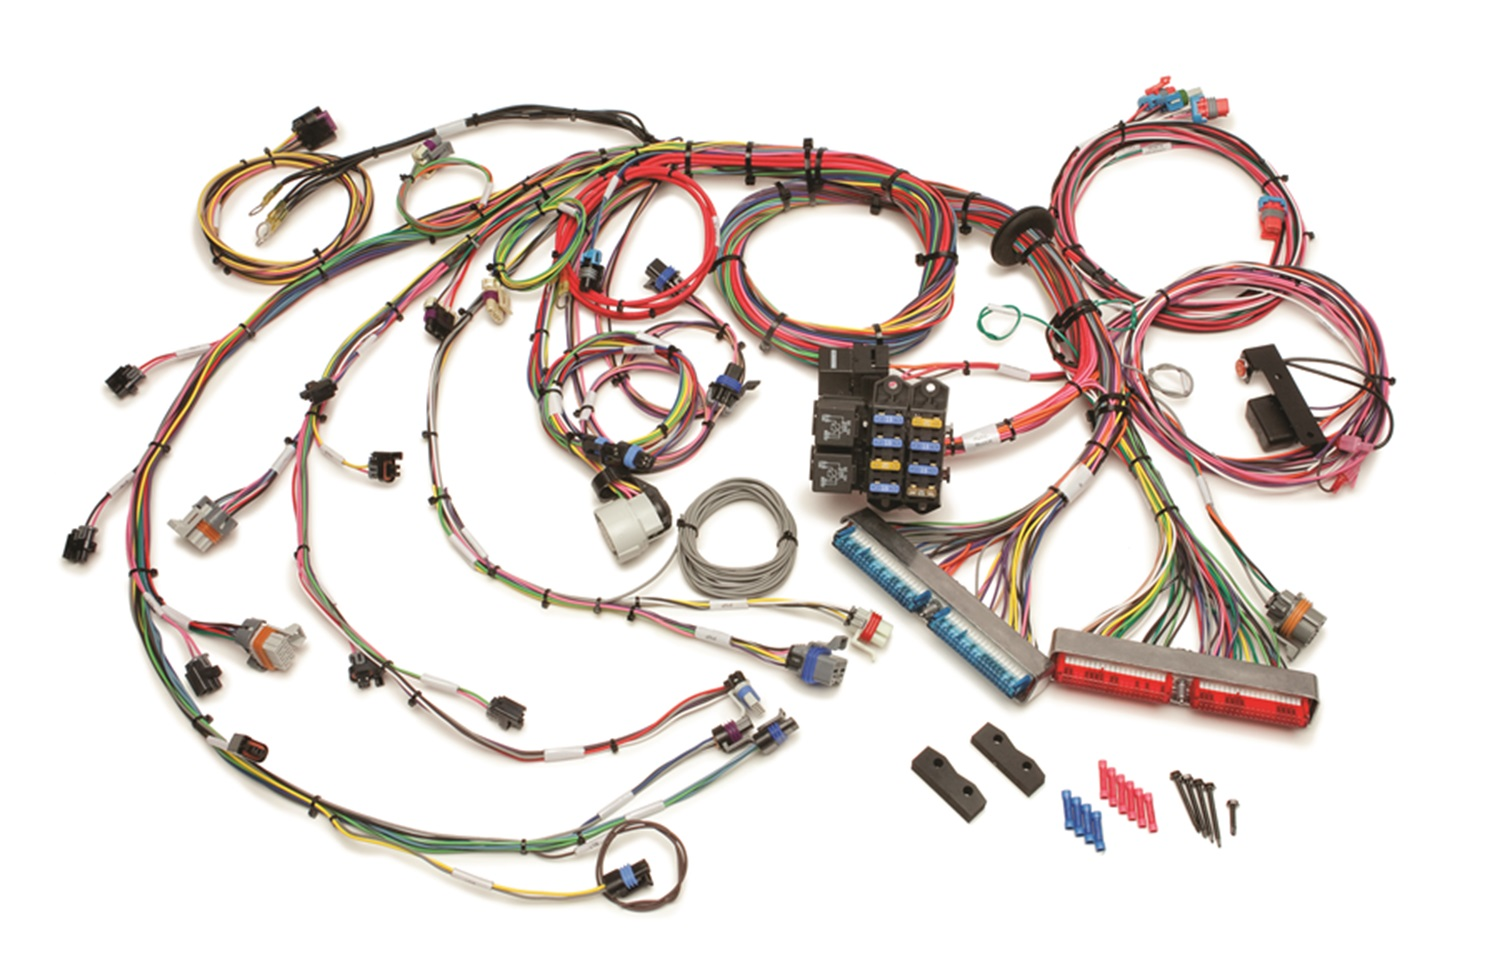 painless wiring 60217 engine wiring harness rh walmart ca Painless Wiring Harness Chevy Painless Wiring Harness Chevy